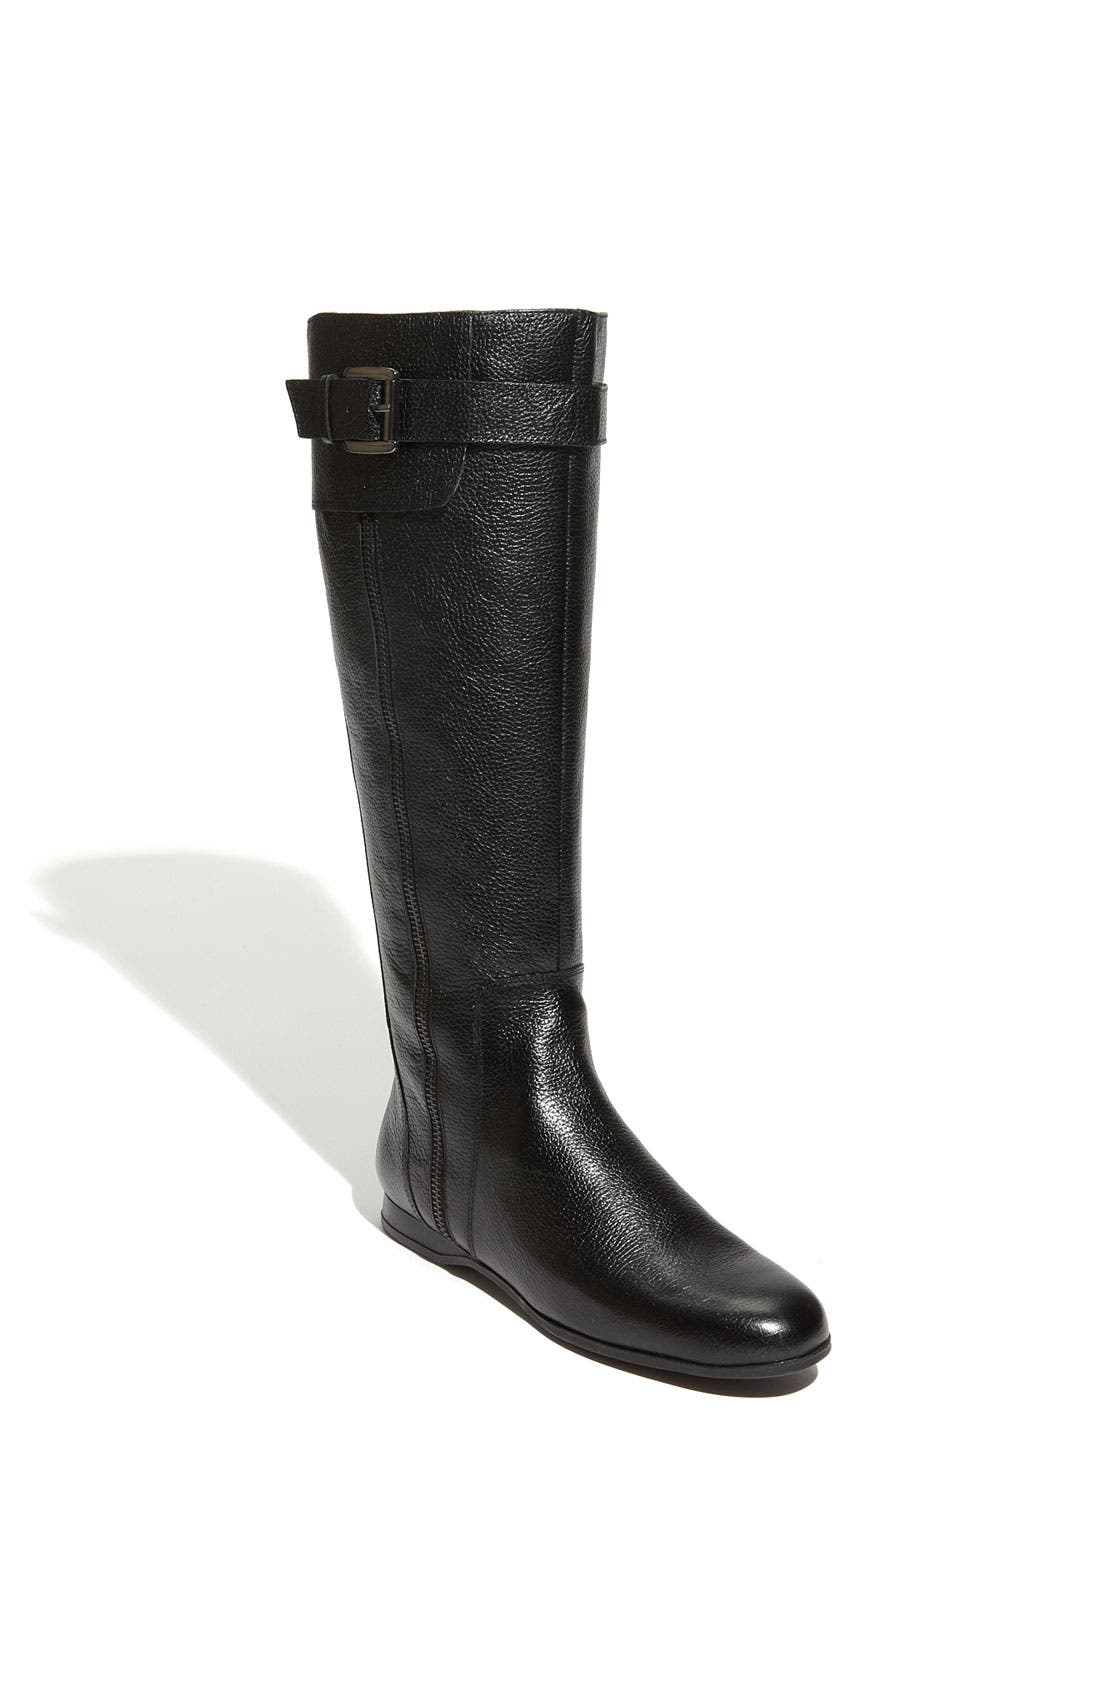 Alternate Image 1 Selected - Enzo Angiolini 'Zayra' Boot